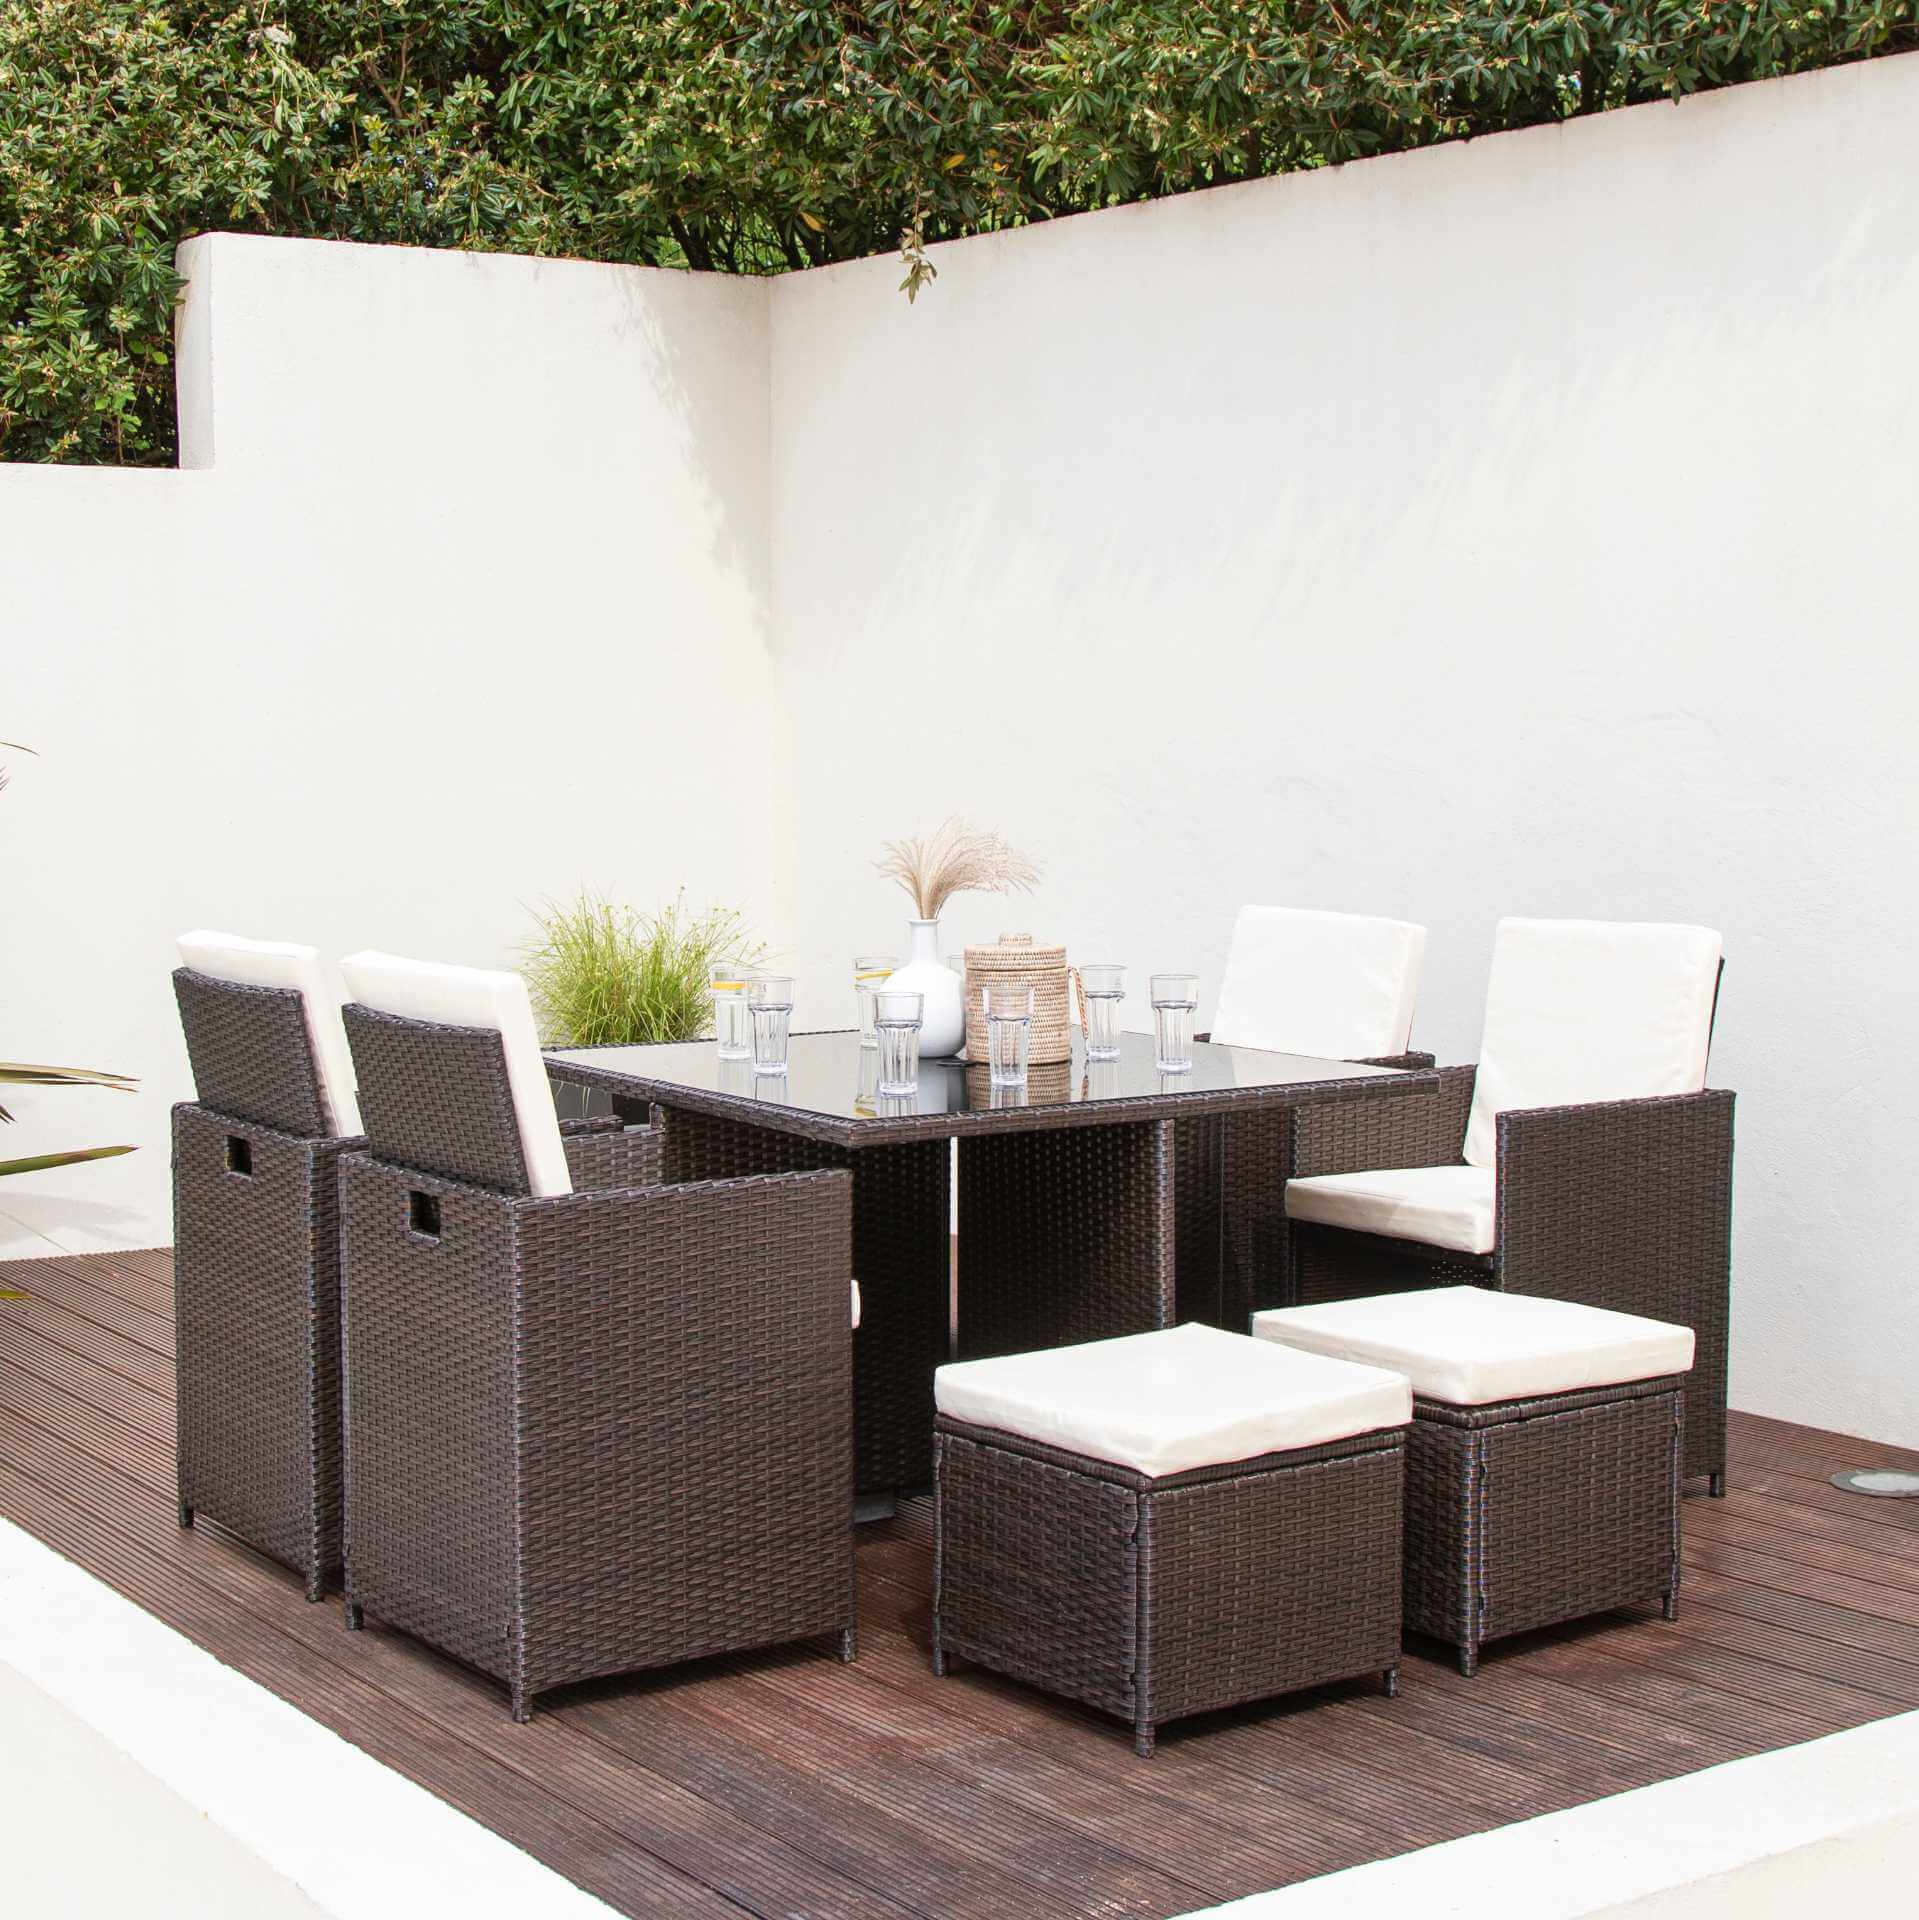 8 Seater Rattan Cube Outdoor Dining Set - Mixed Brown Weave - Laura James